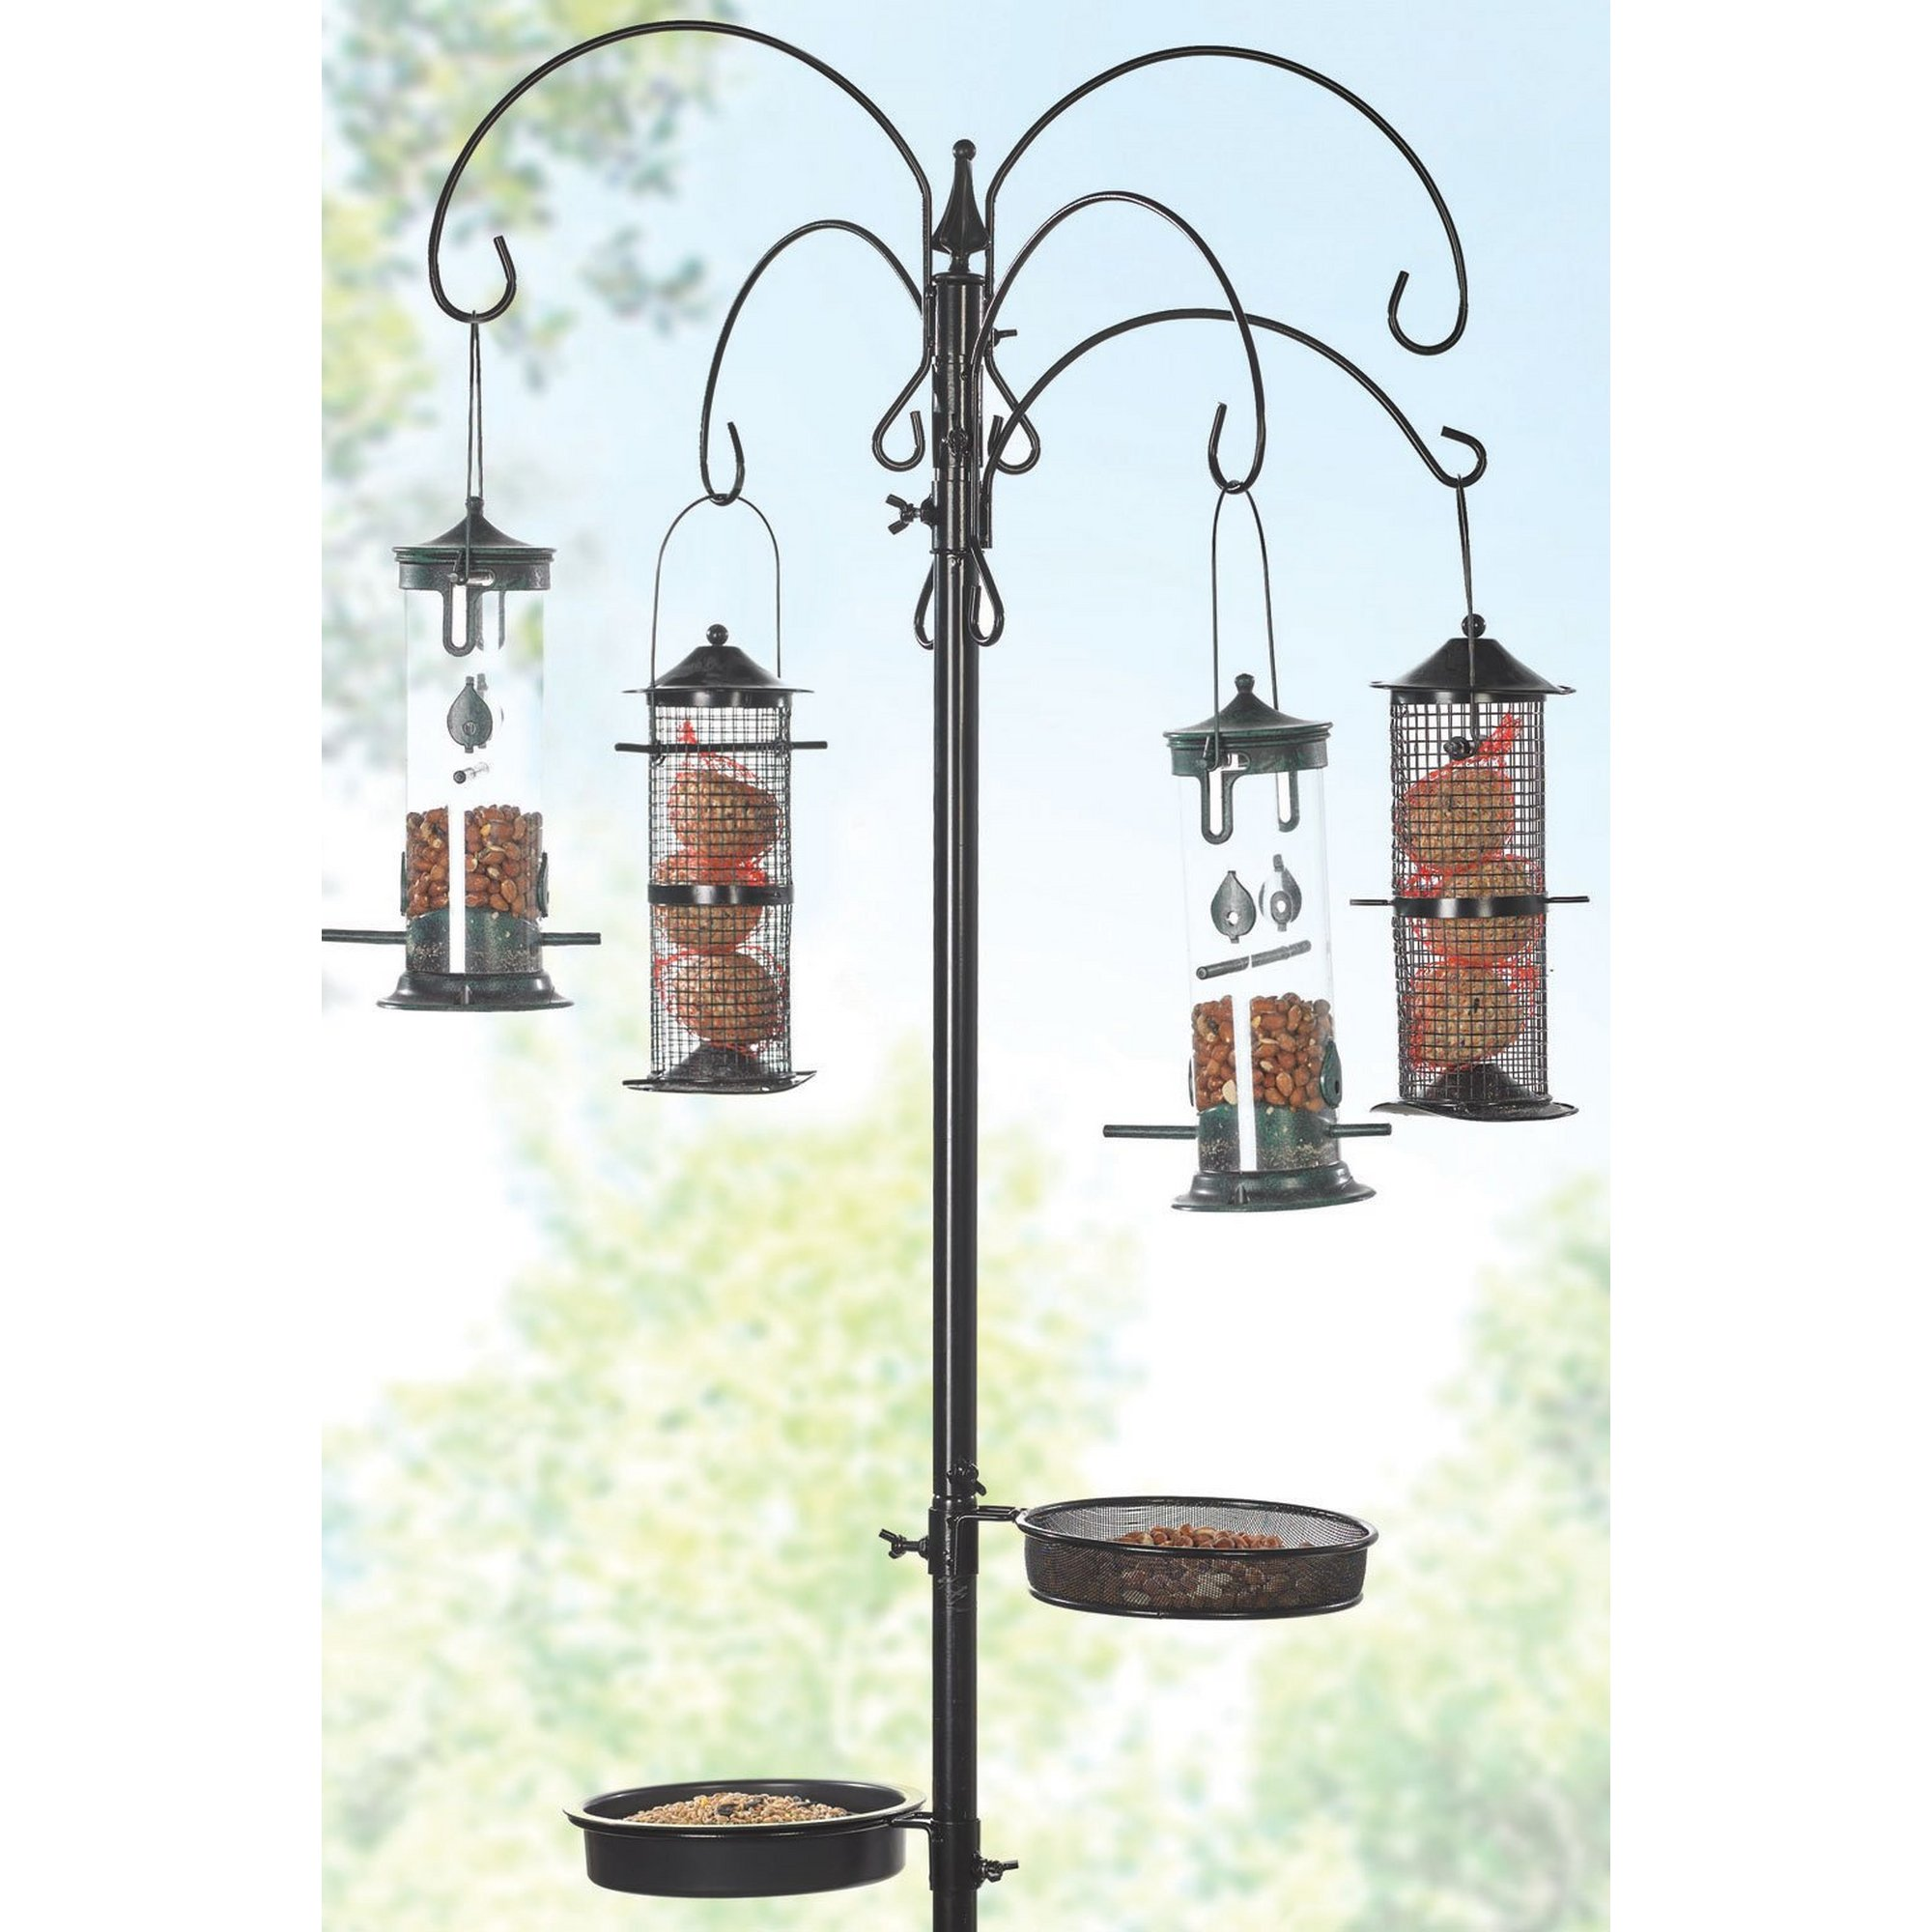 Image of All In One Bird Feeding Station